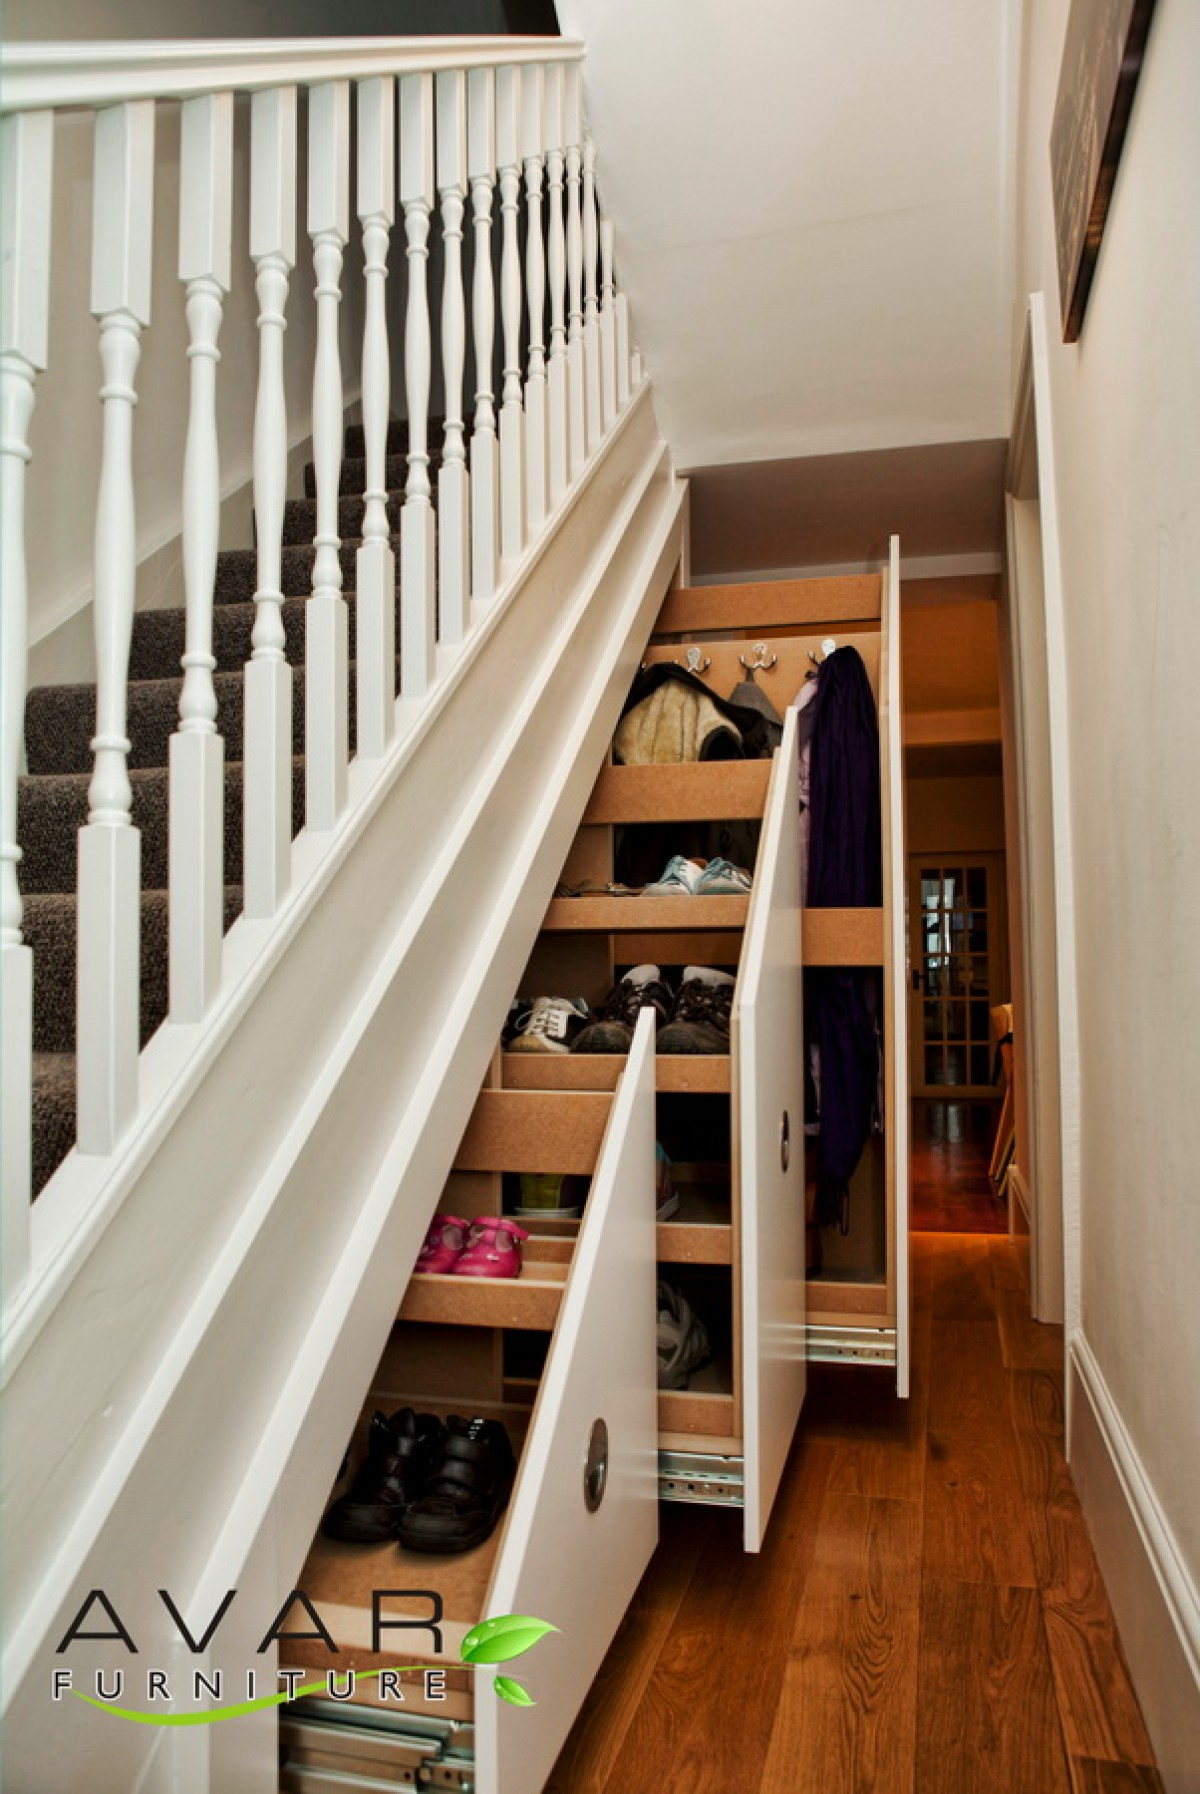 Under stairs storage ideas gallery 10 north london for Understairs storage